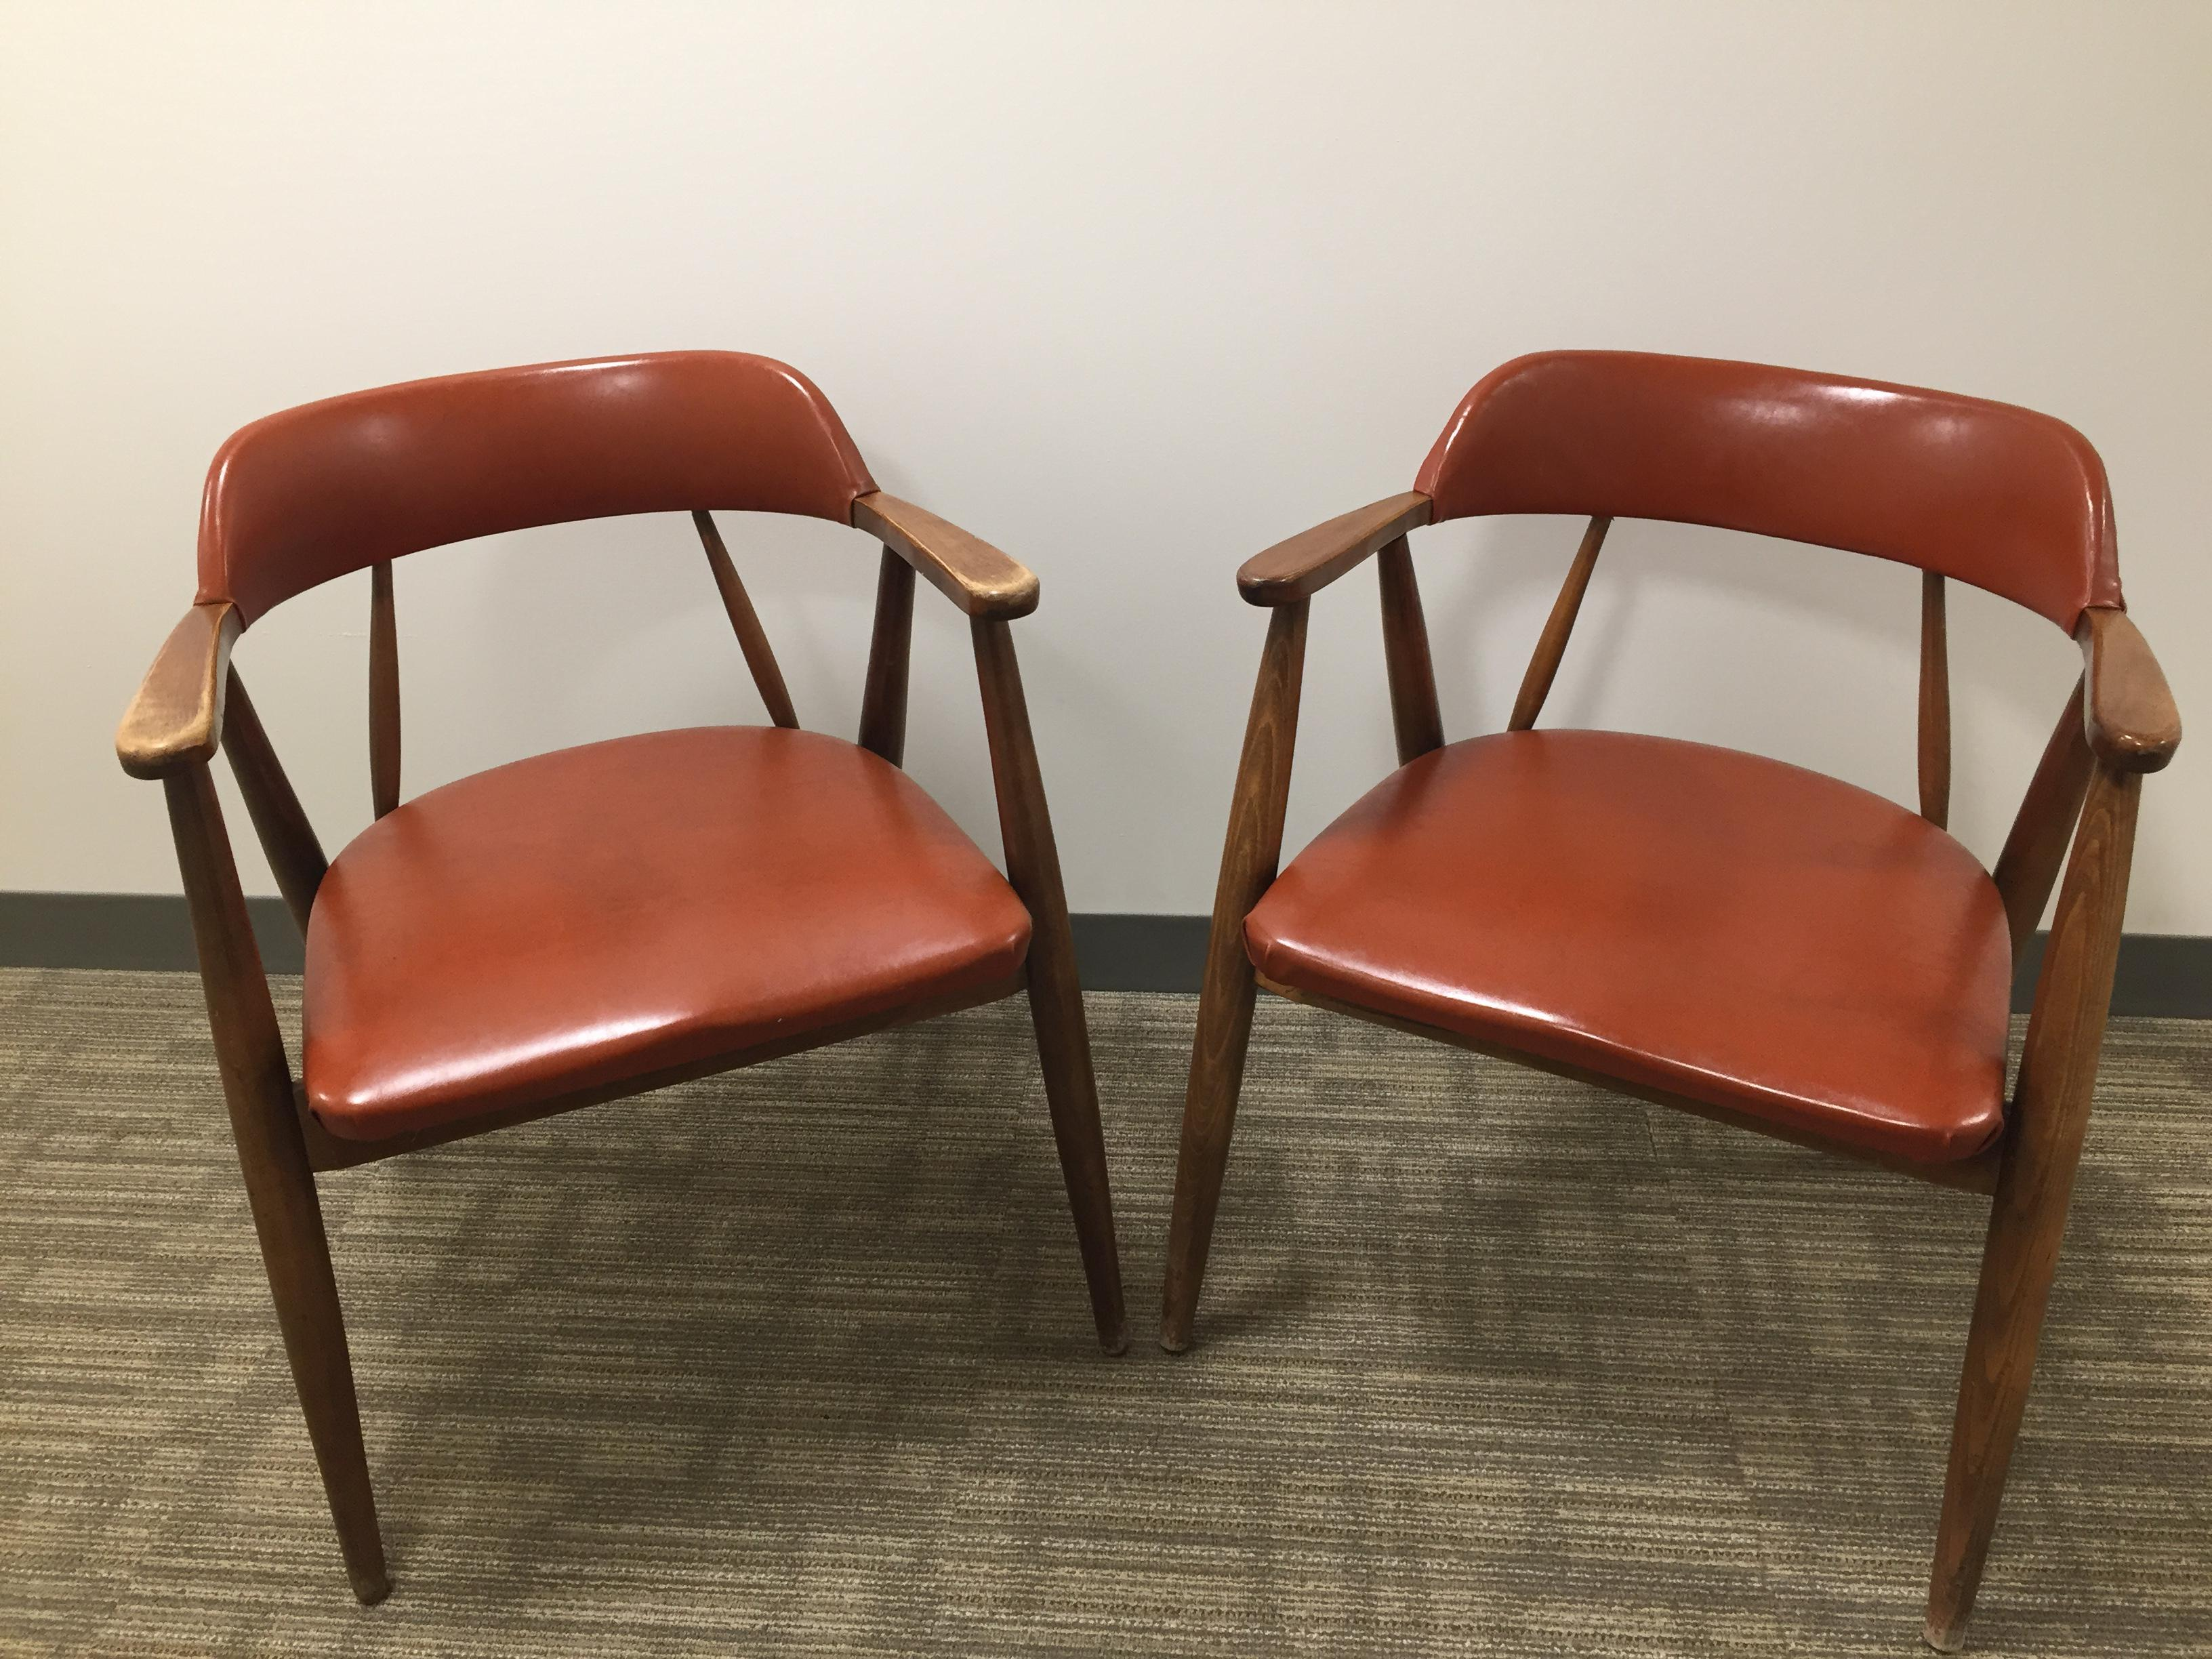 Vintage MidCentury Modern Chairs by Boling Chair Co A Pair